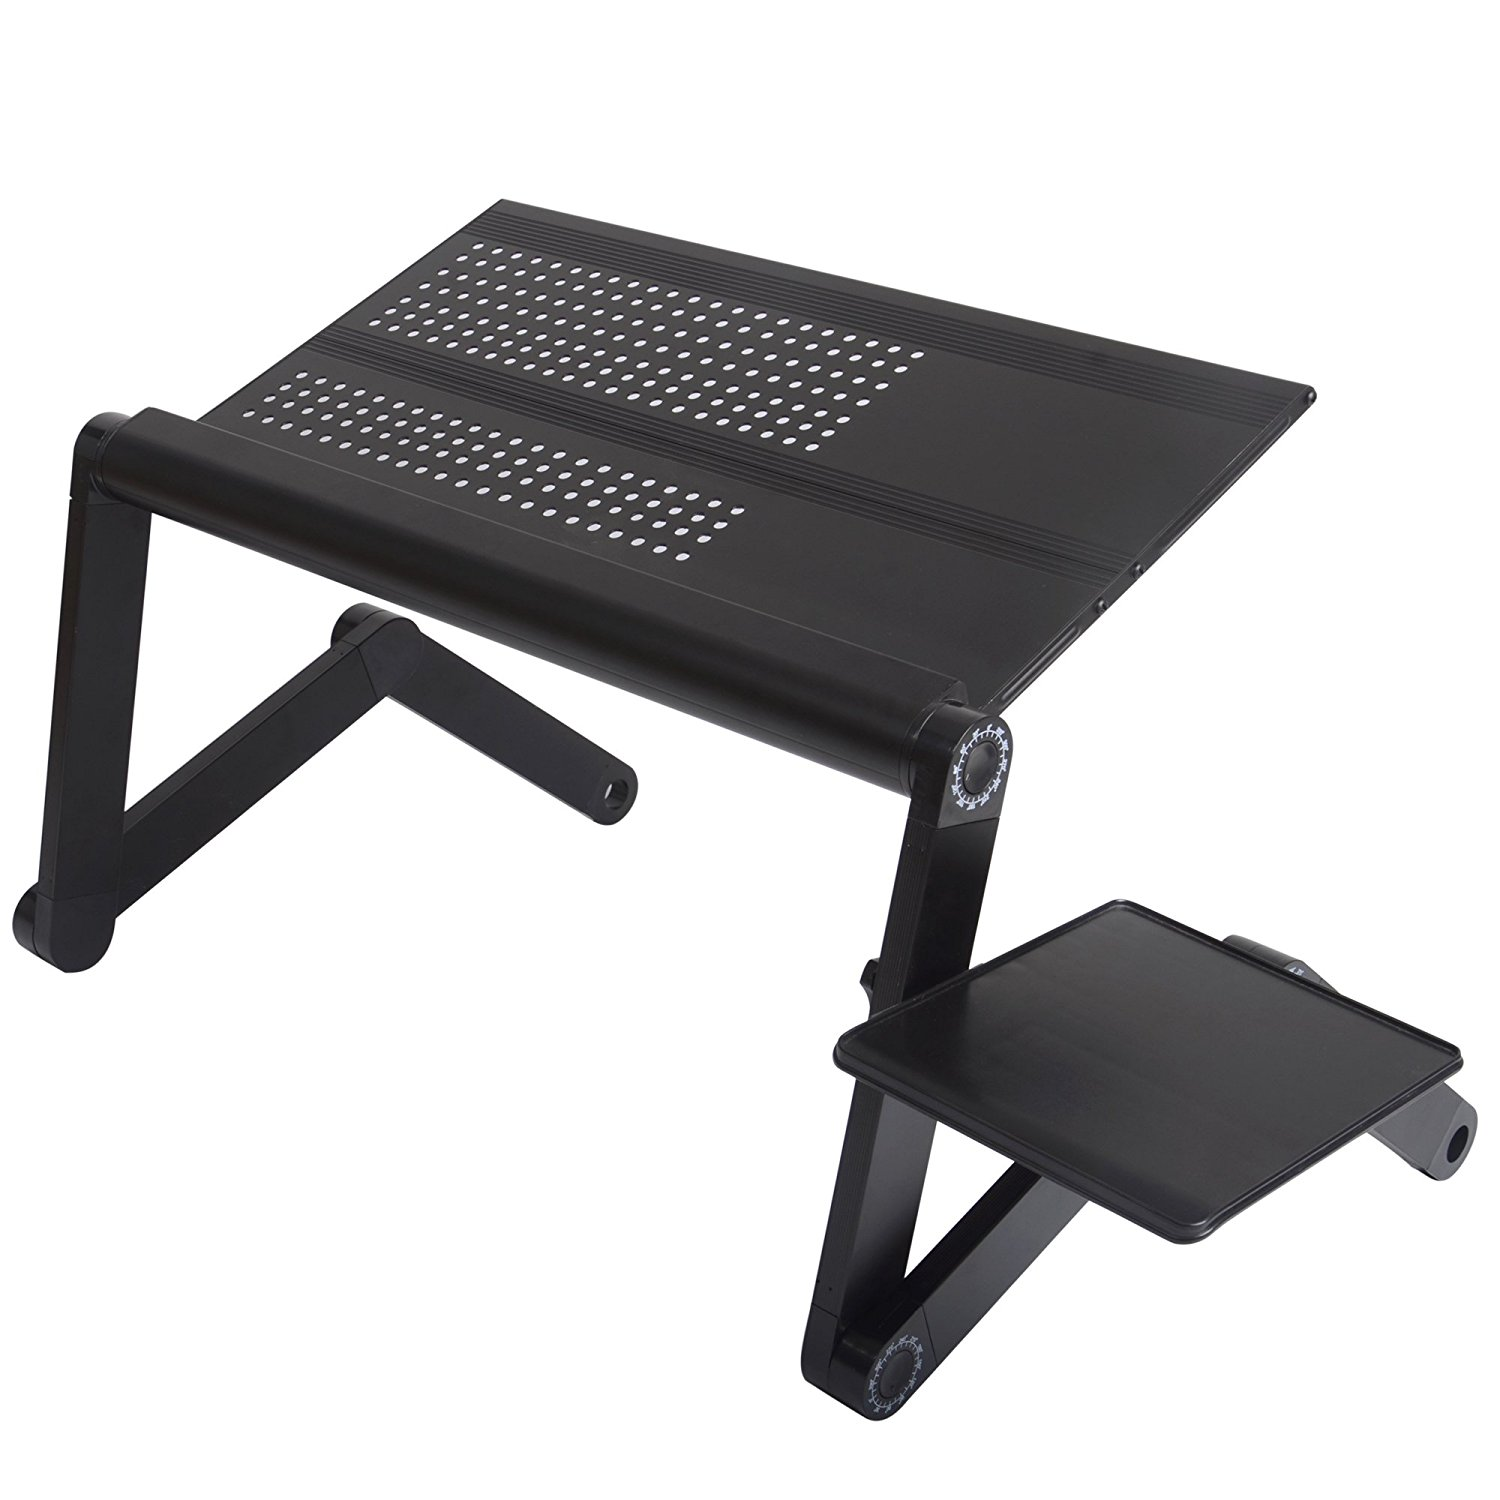 Portable Adjustable Vented Laptop Desk Aluminum Lap Tray Stand With Side Tray Ald05 0